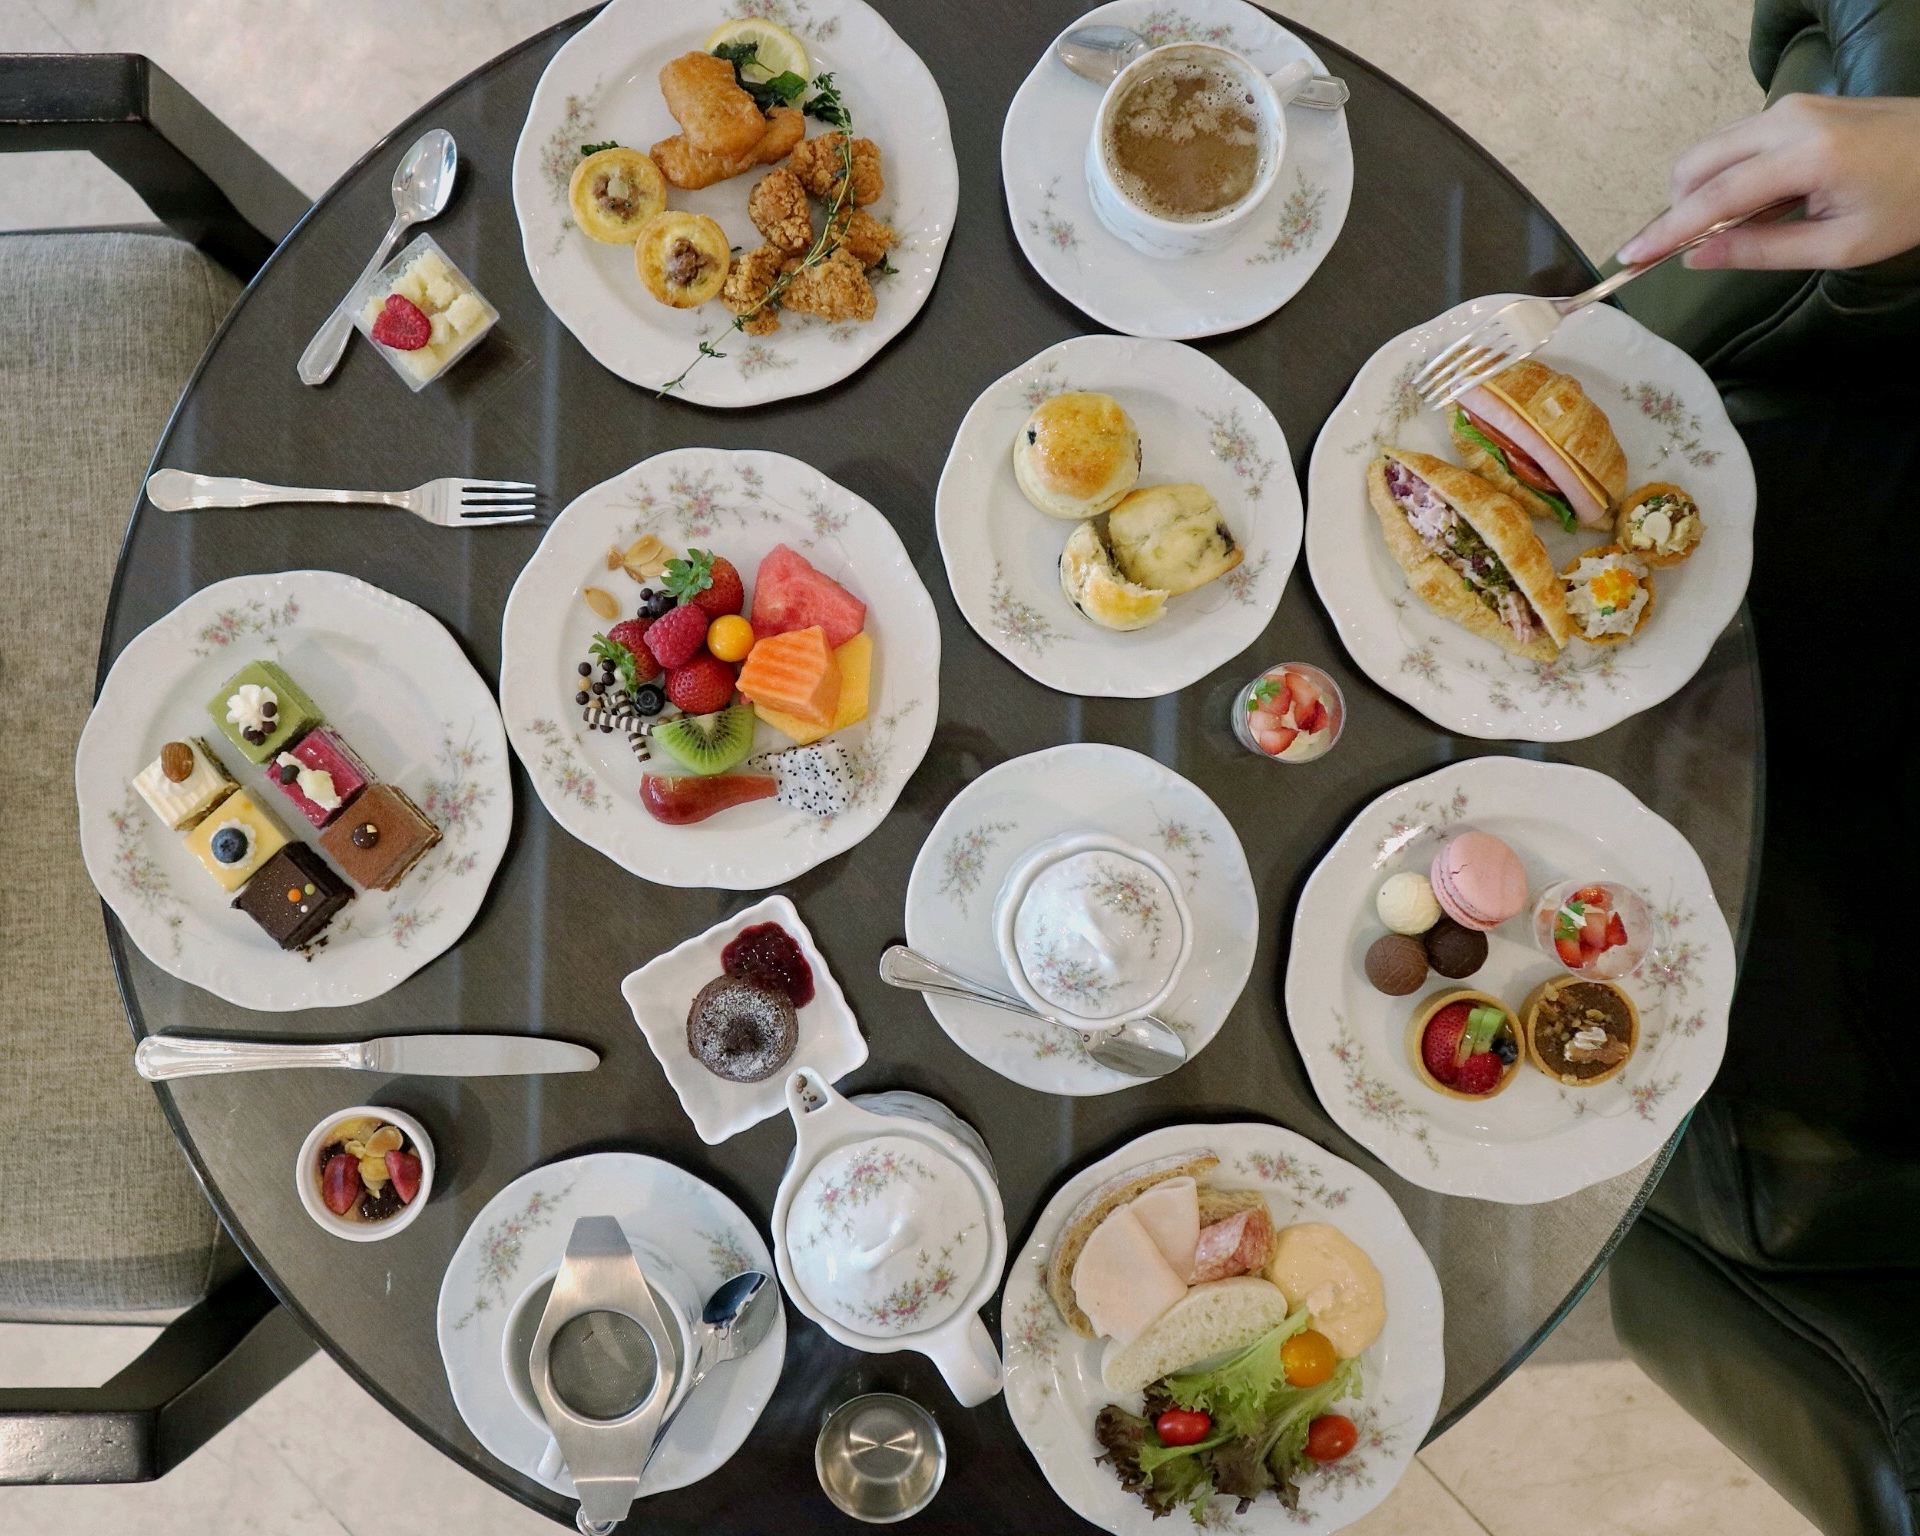 L'Espresso at Goodwood Park Hotel: Indulge in a DELIGHTFUL Victorian English Afternoon Tea